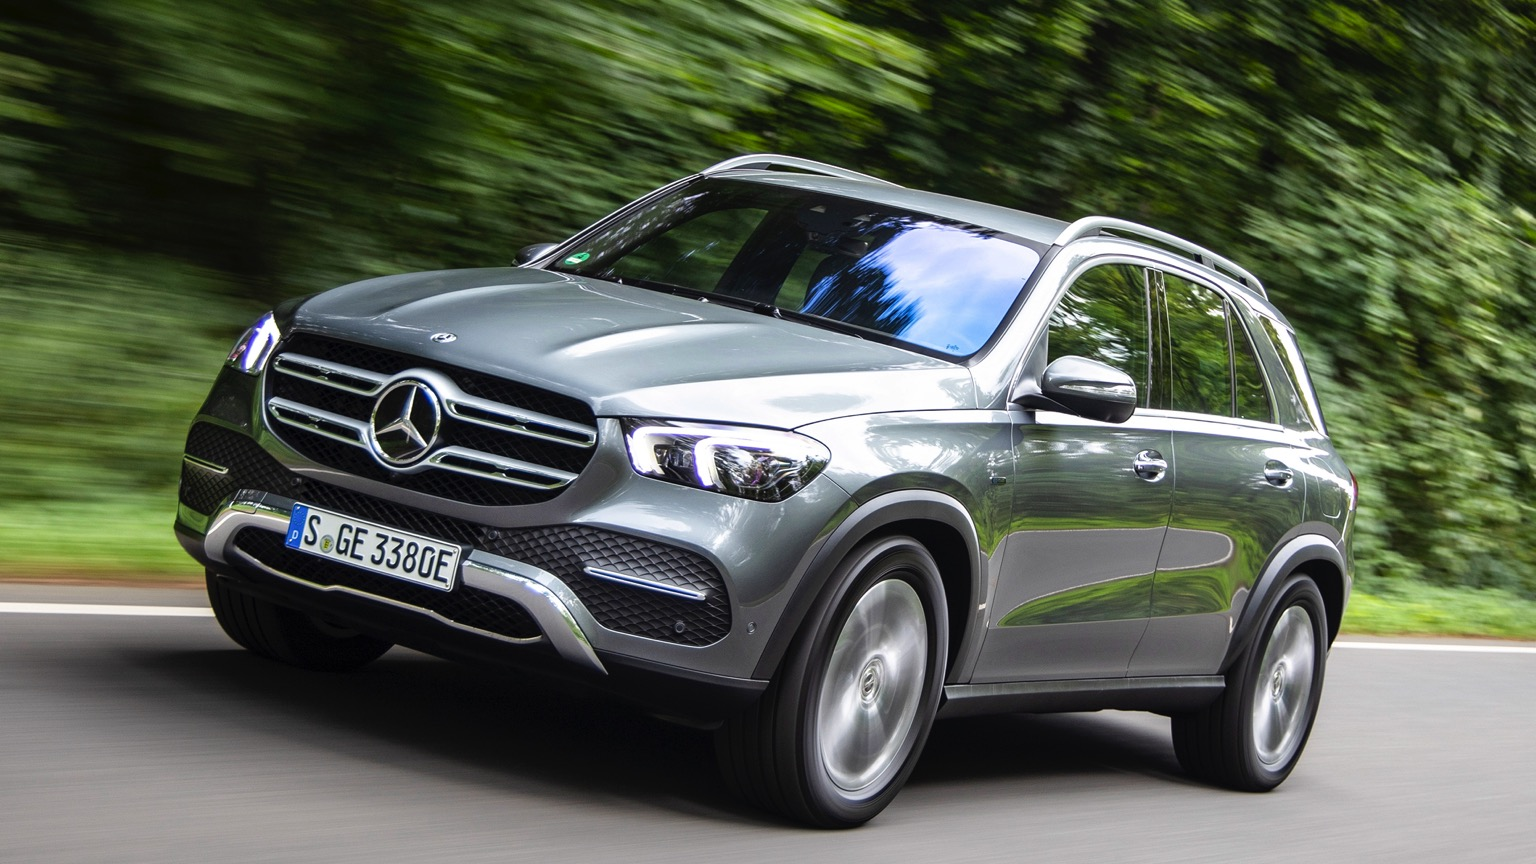 Mercedes GLE 350 e 4MATIC (2020)